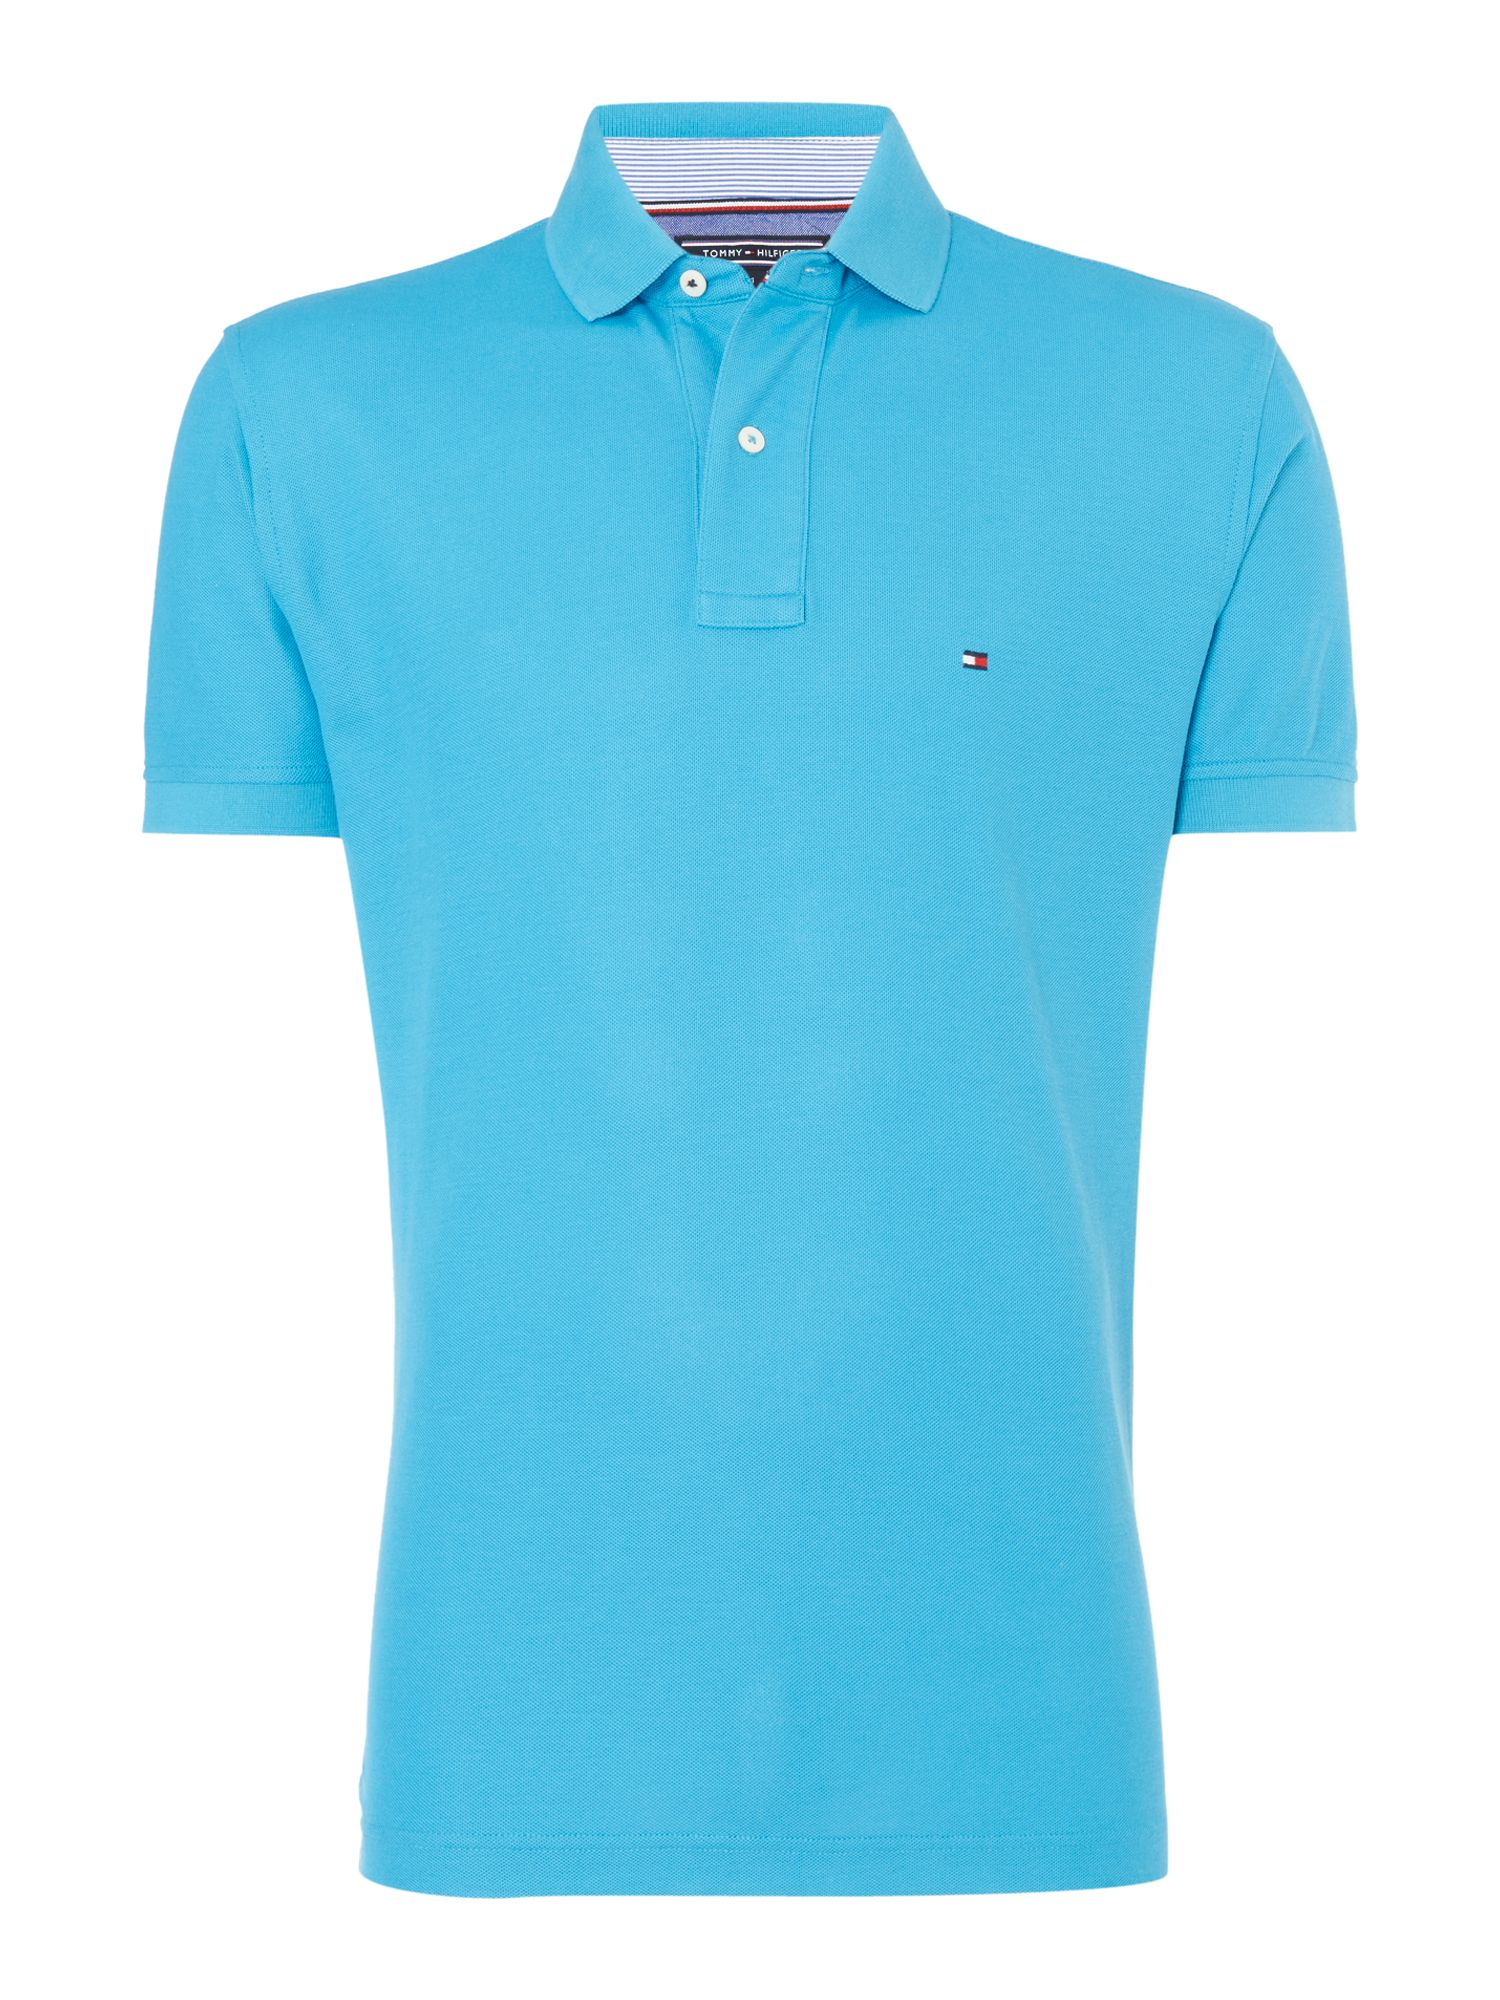 Men's Tommy Hilfiger Regular fit performance polo top, Blue